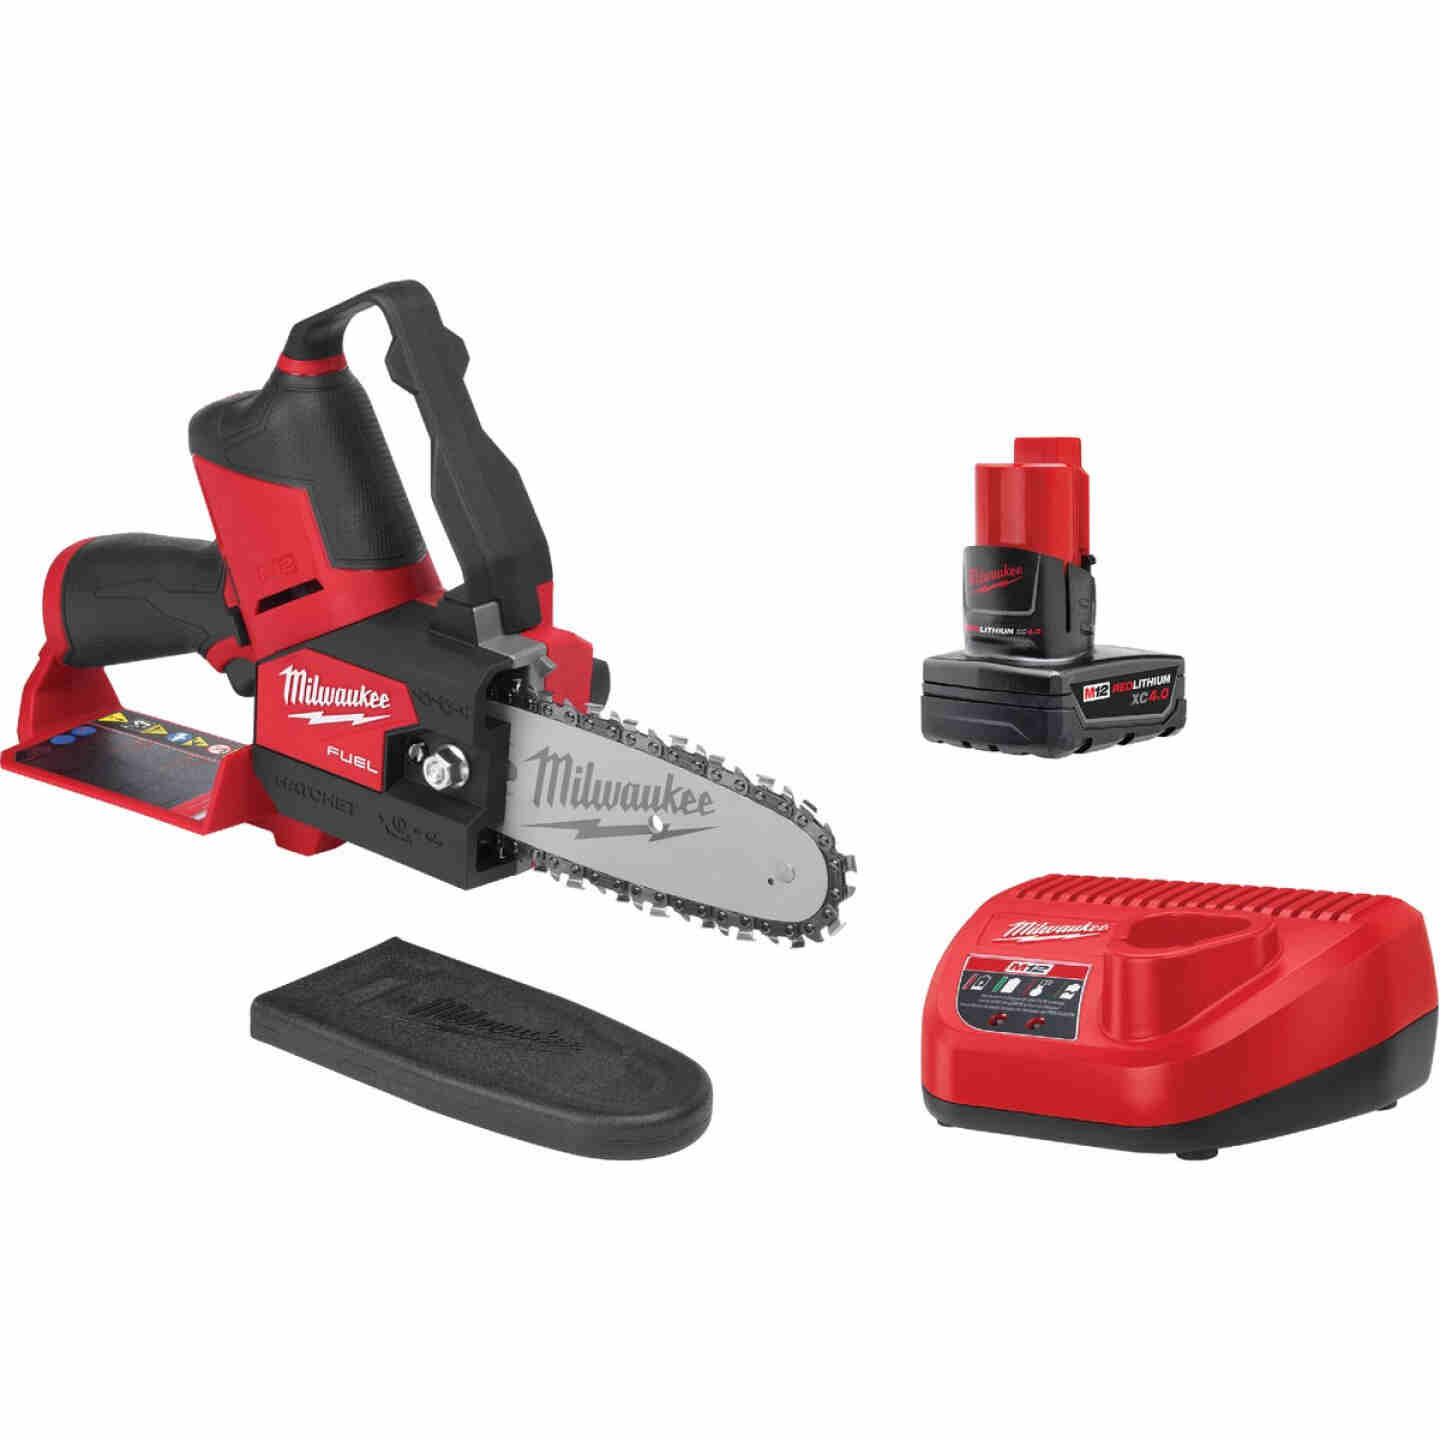 Milwaukee M12 Fuel Hatchet 6 In. 12V Pruning Saw Kit Image 1